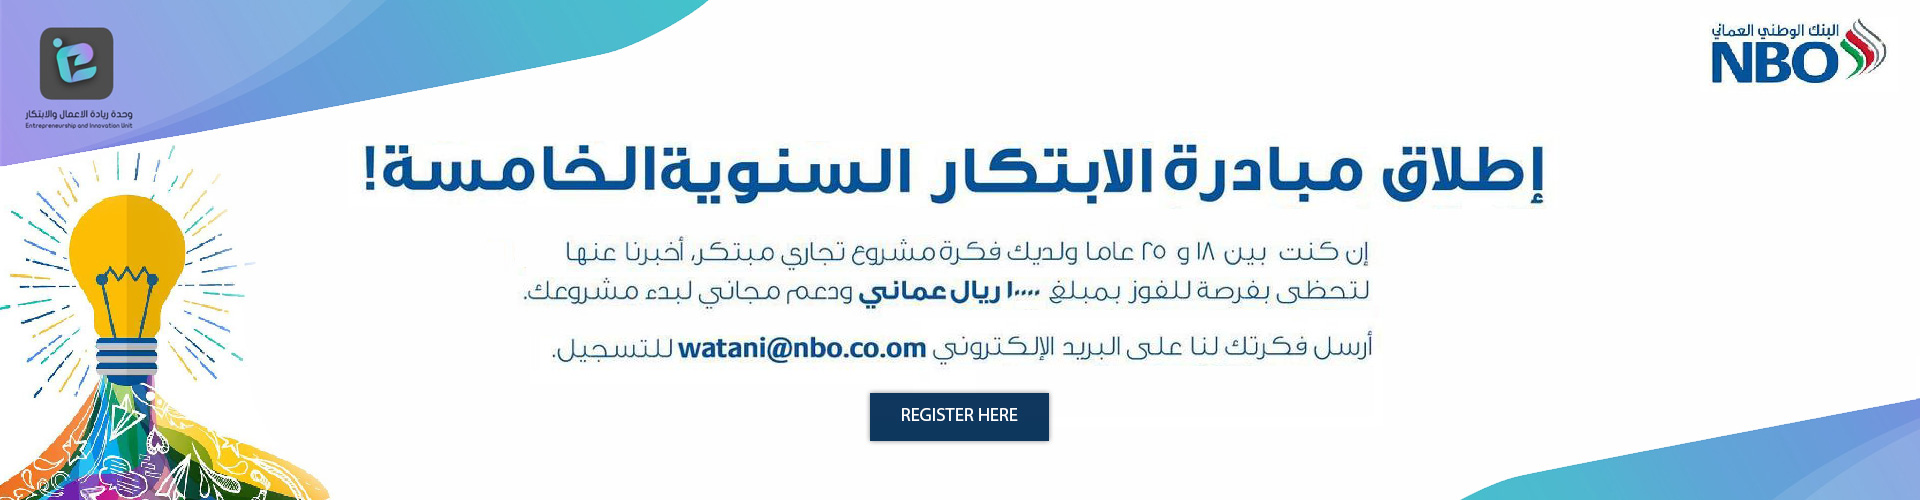 NBO Innovation Competition